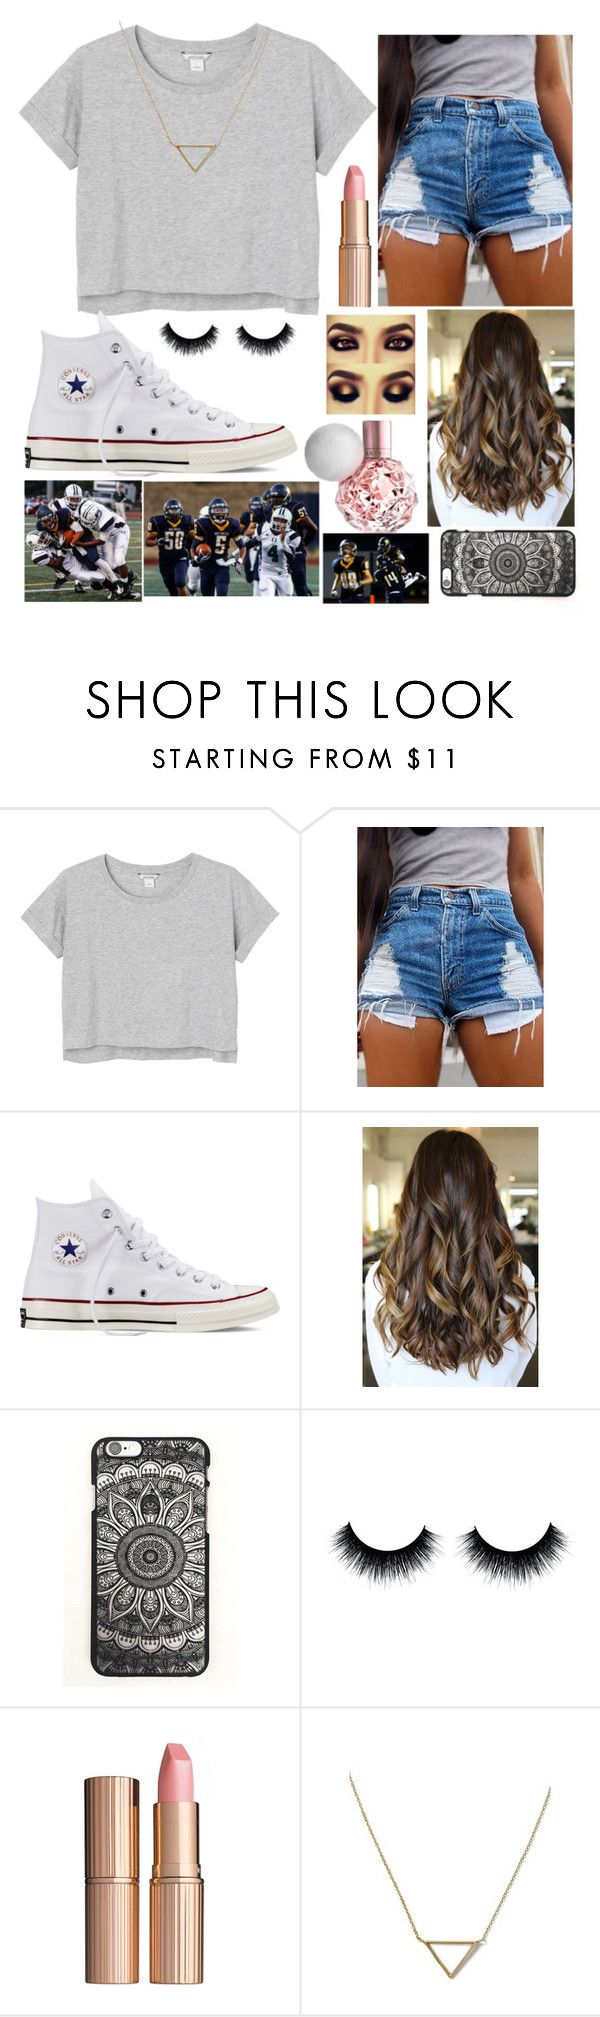 """Highschool football game"" by fashongirl03 ❤ liked on Polyvore featuring Monki, Converse, Charlotte Tilbury and Banana Republic"